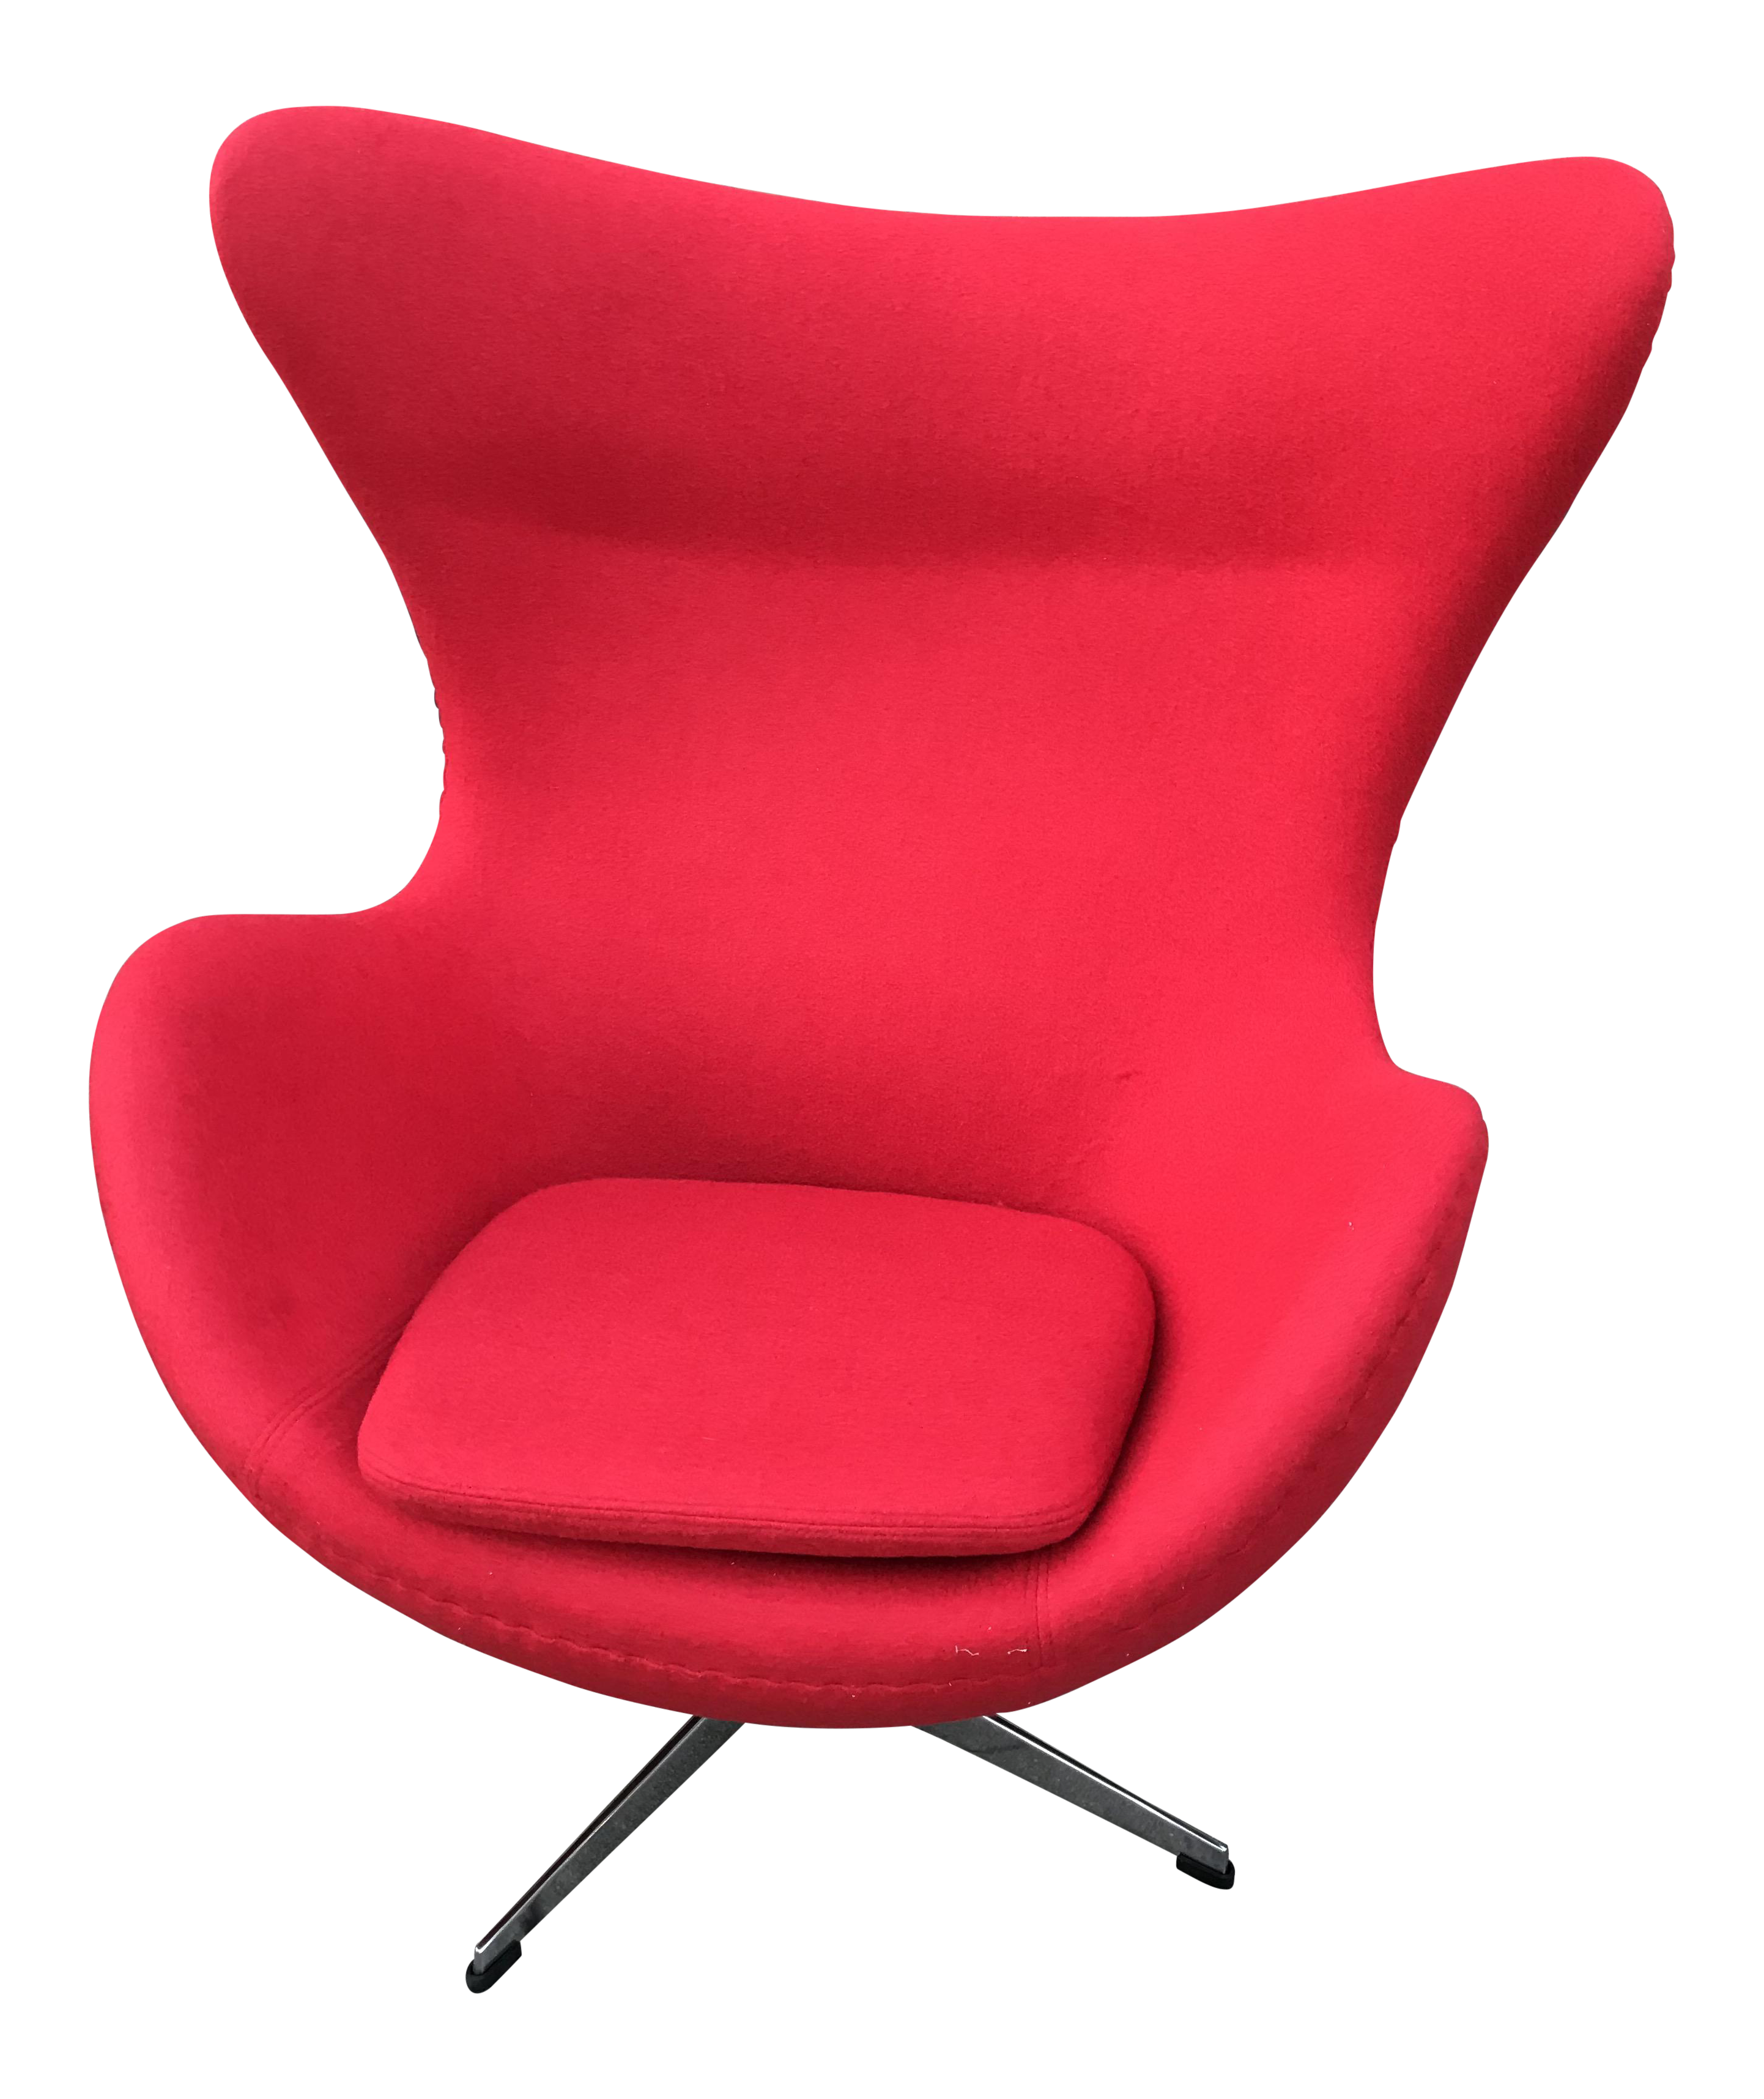 Modern Red Egg Chair